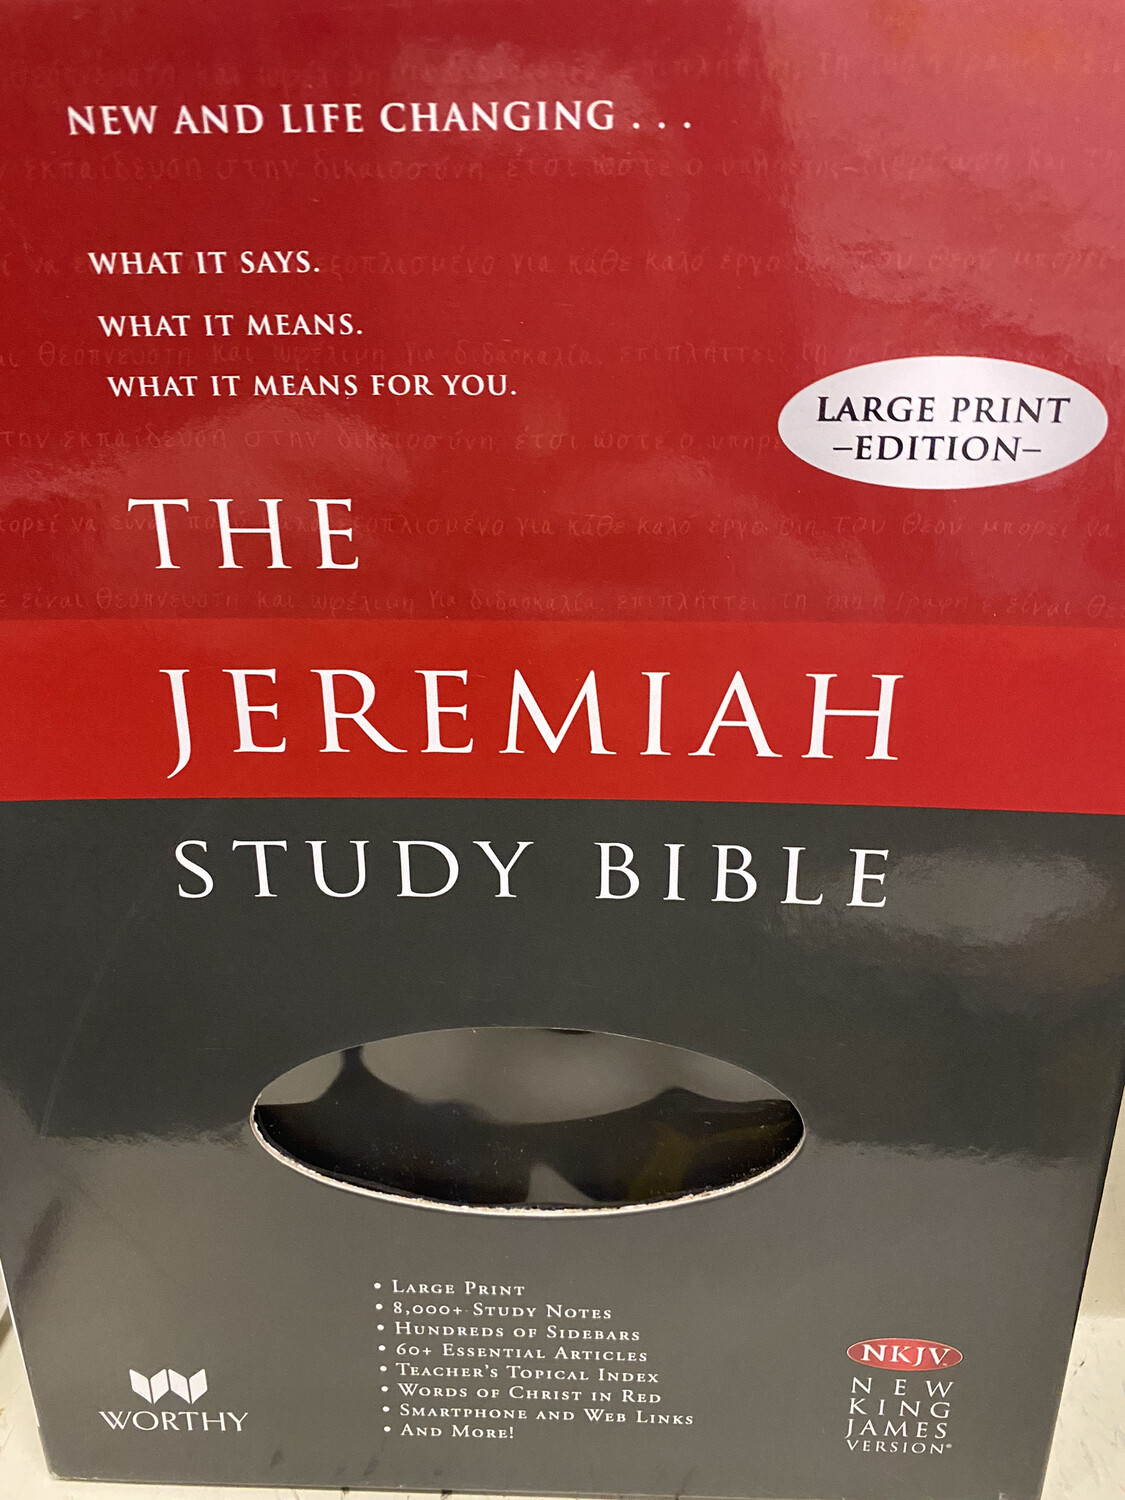 The Jeremiah Study Bible LP Black Leather